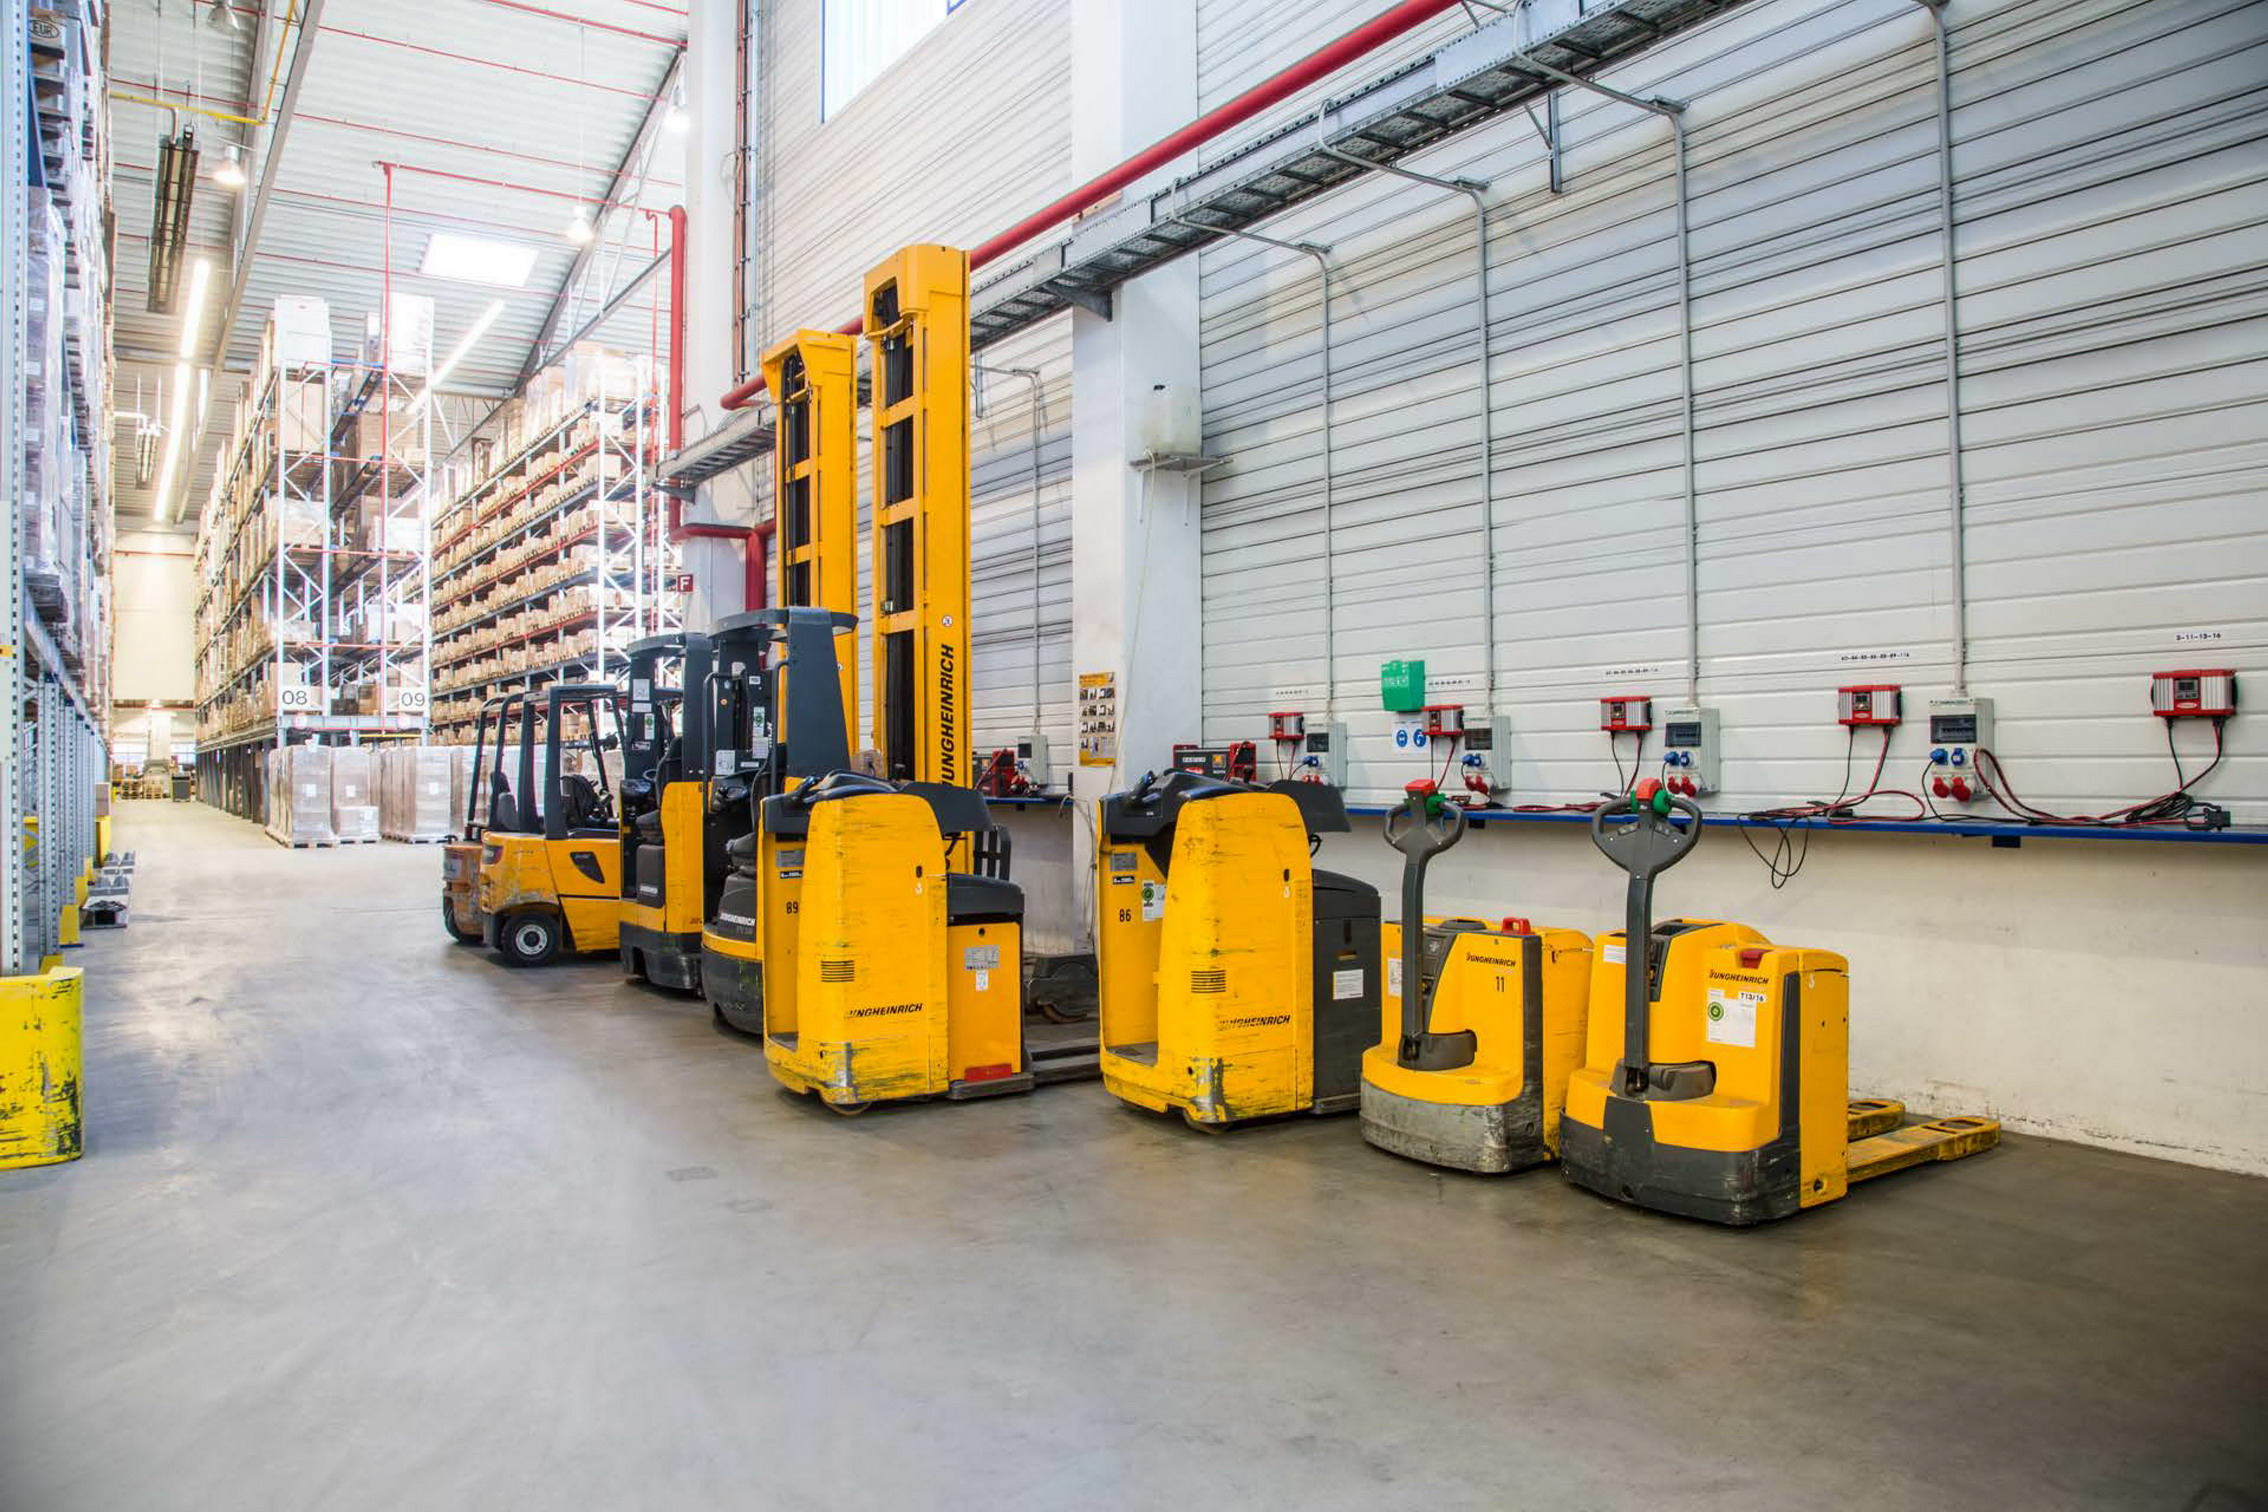 Rhenus cuts energy costs of forklift truck fleet logistics rhenus operates a fleet of 24 electrically powered forklift trucks a central charging station xflitez Gallery